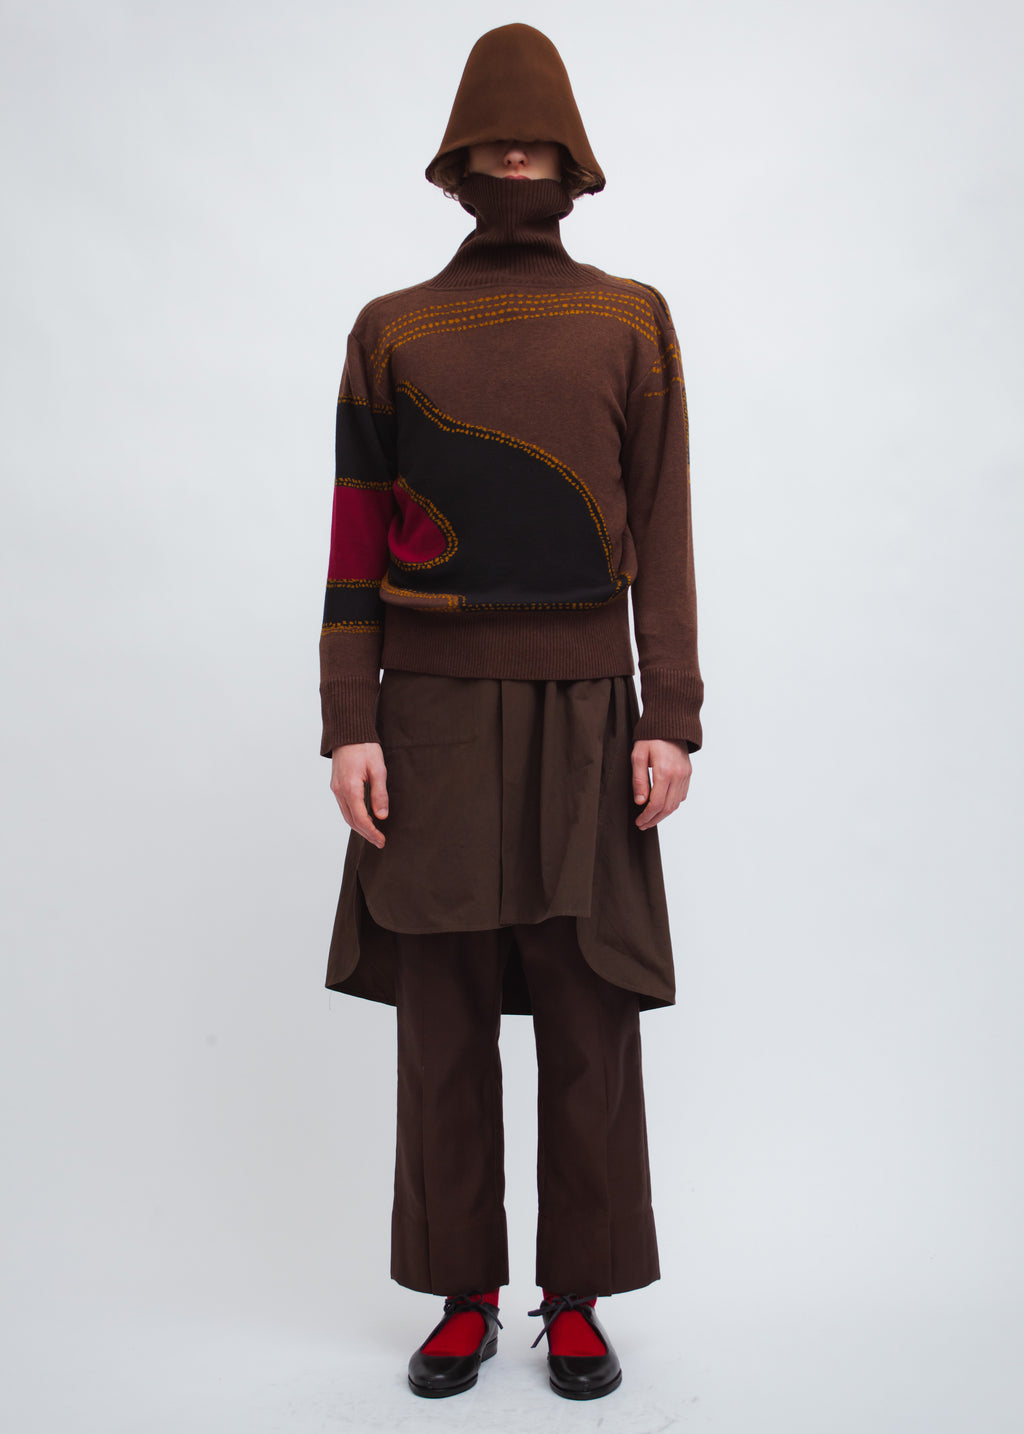 Omar Afridi Creek Turtle Neck (Brown)